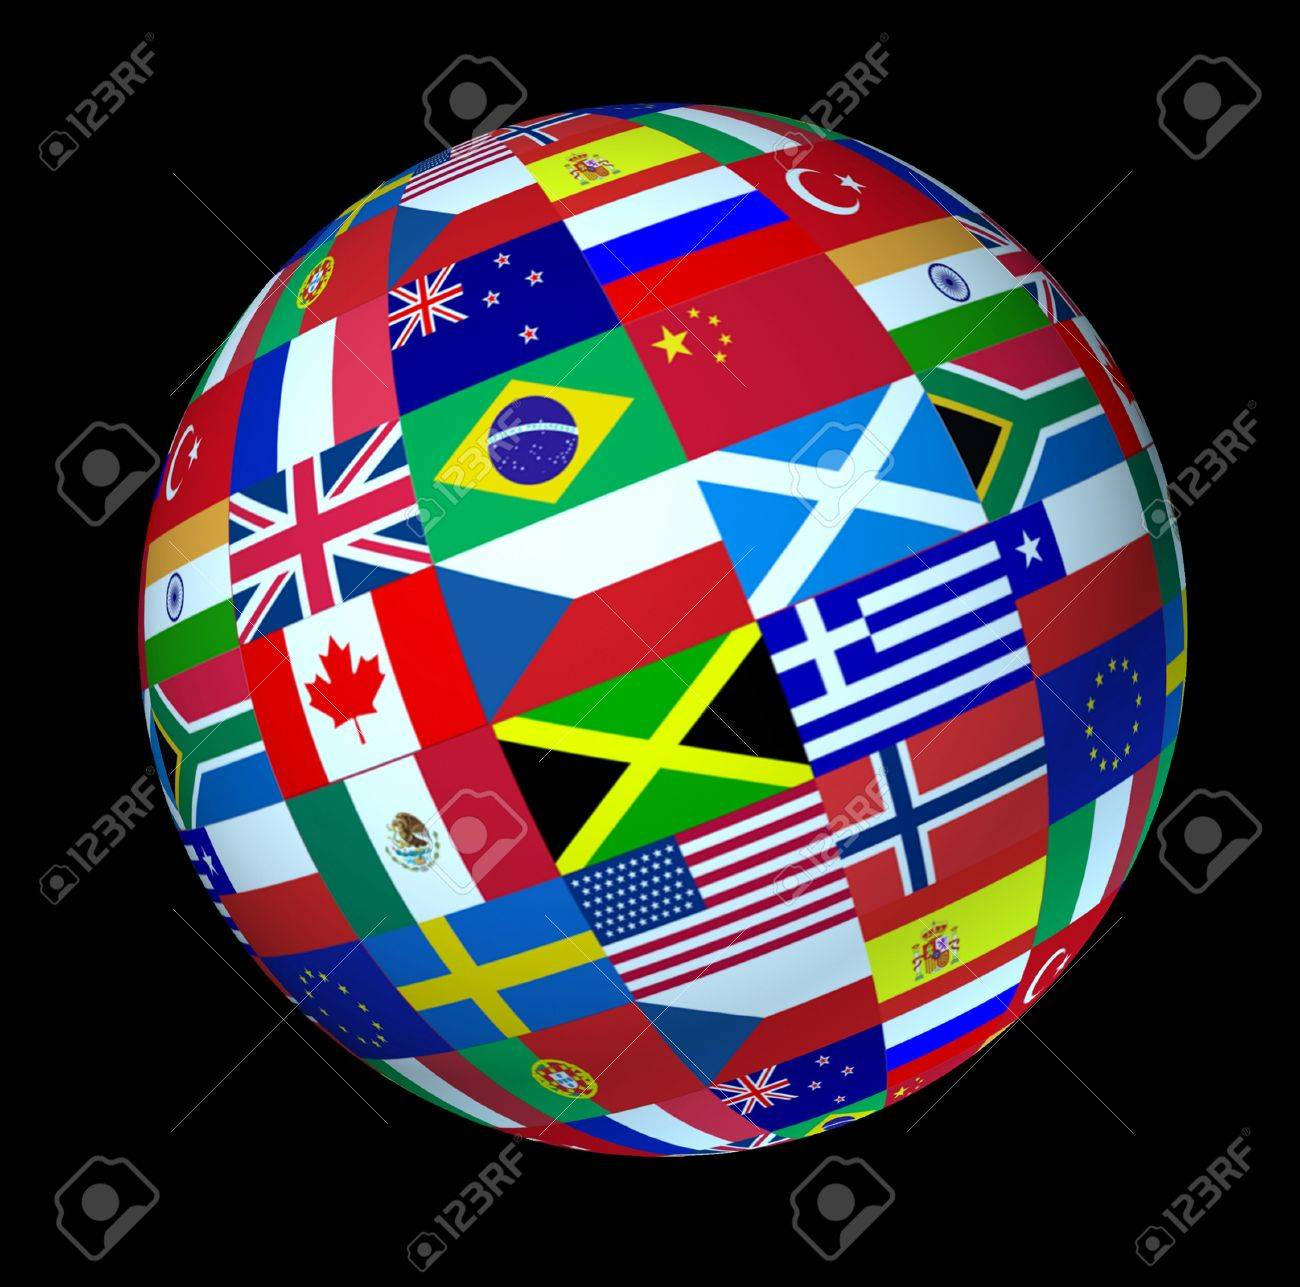 World flags sphere floating on a black background as a symbol